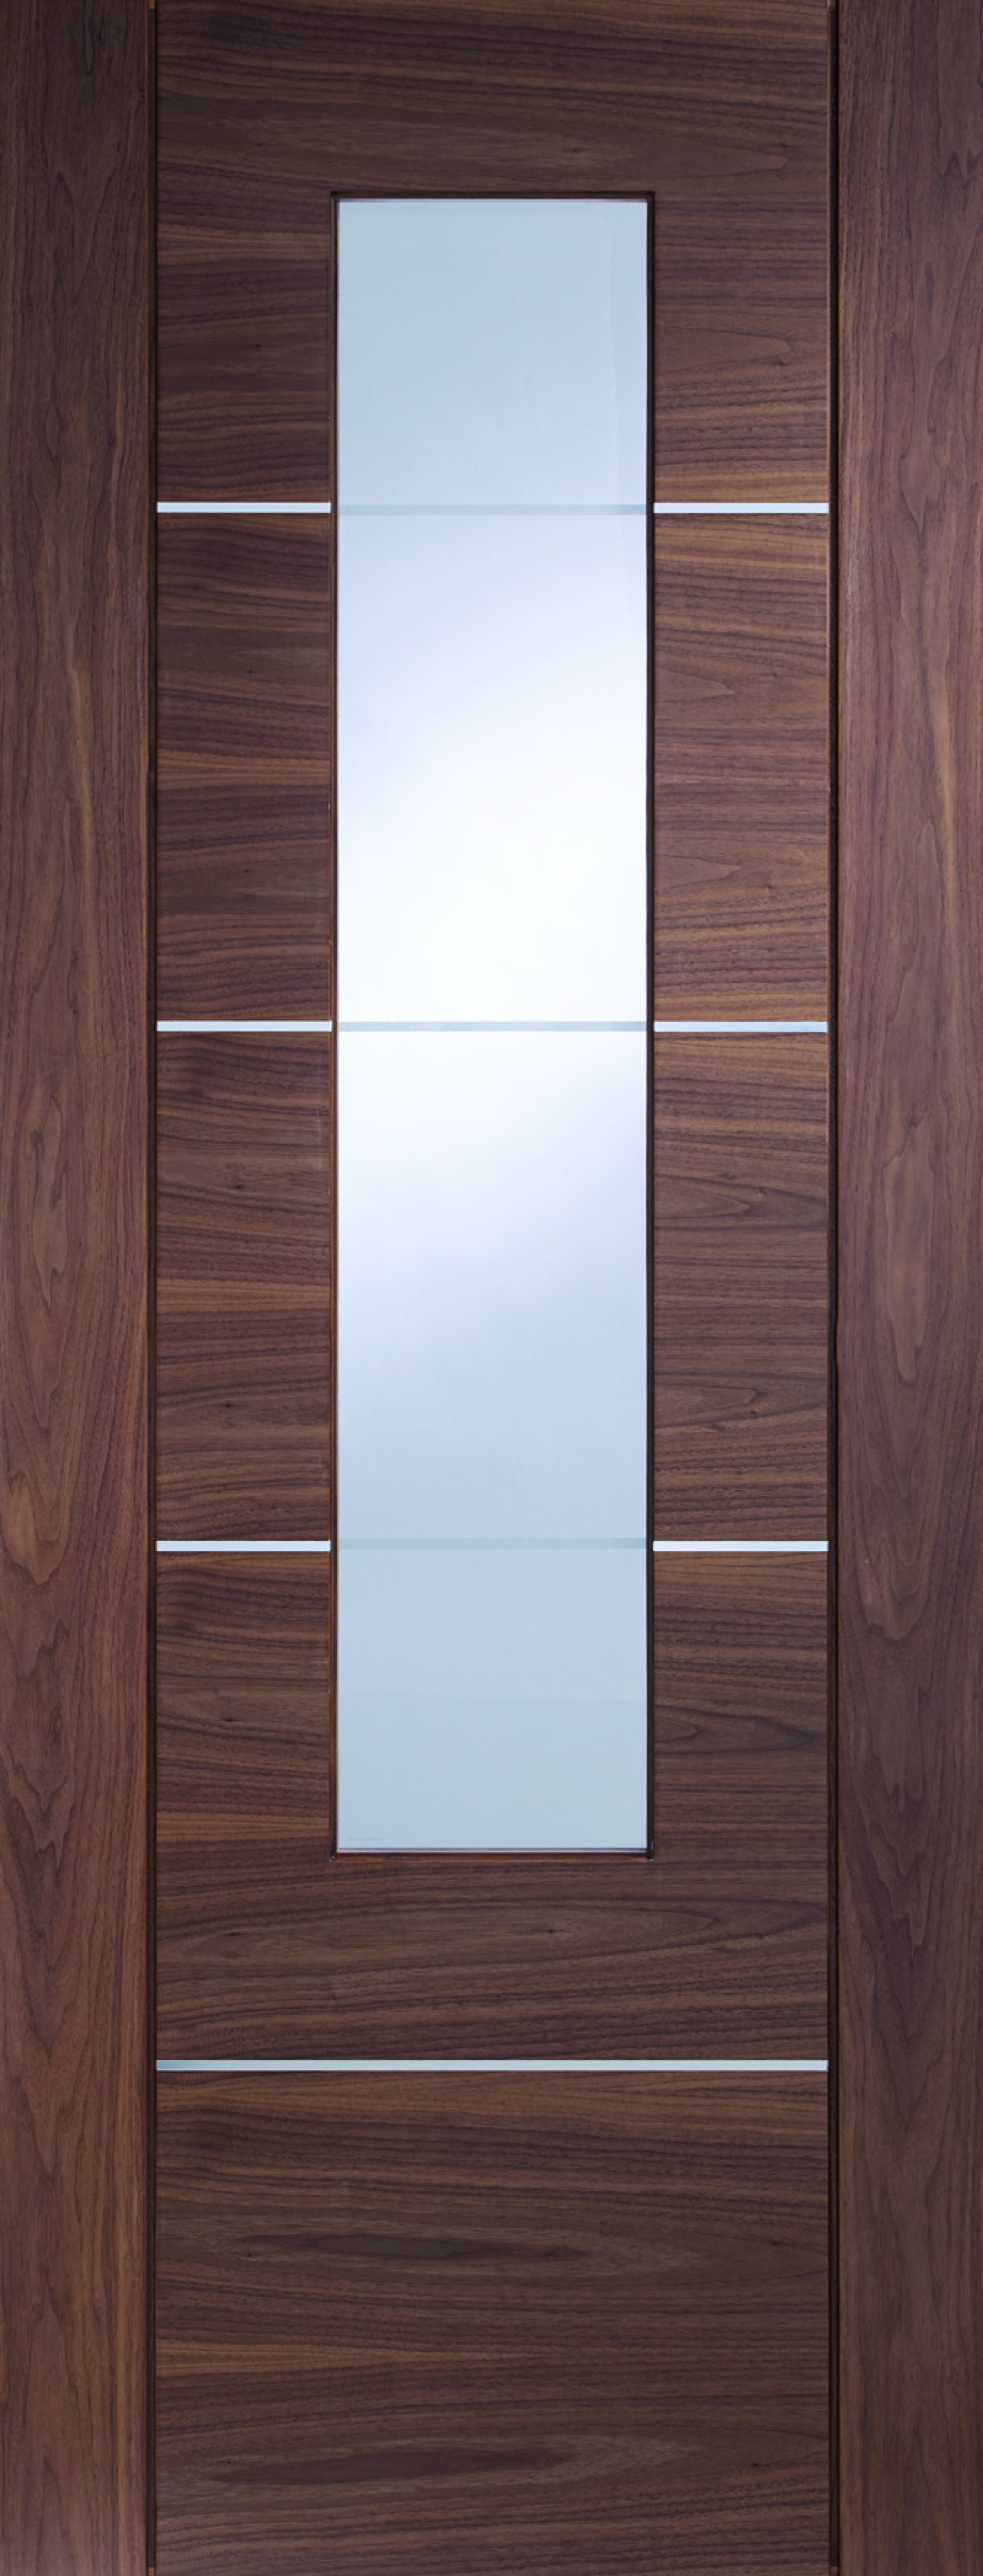 Portici Walnut Glazed Door - PREFINISHED